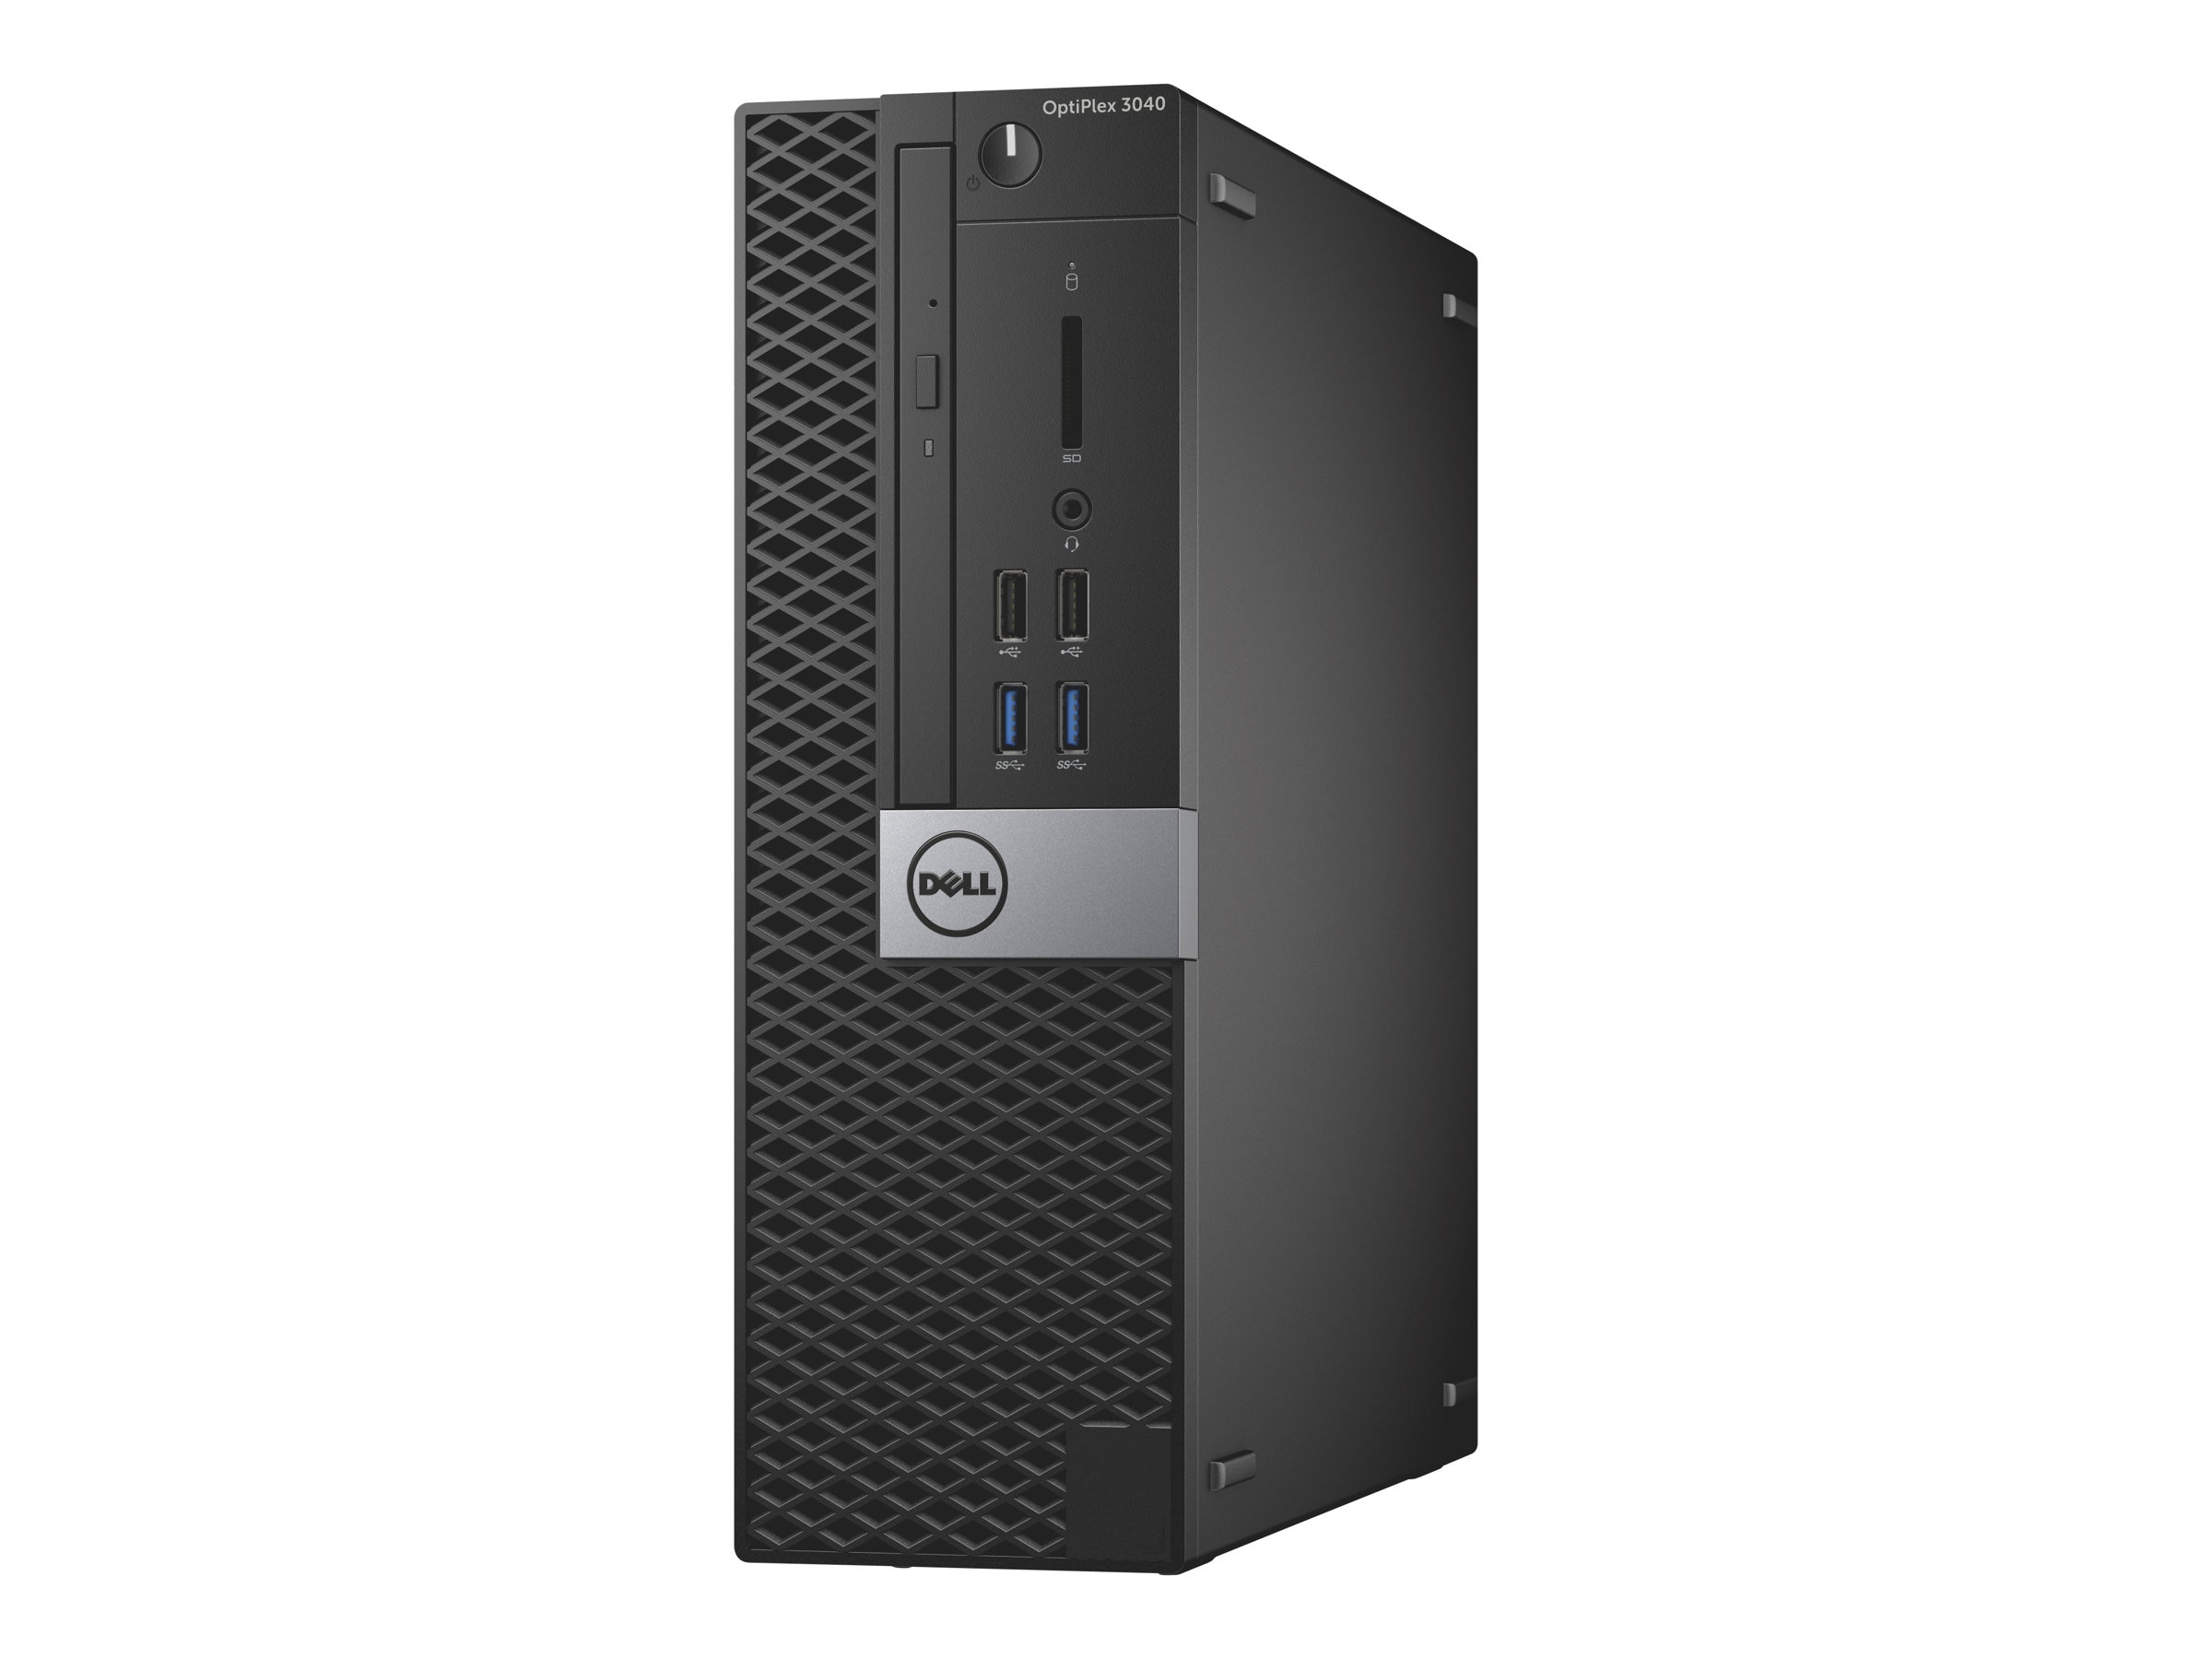 Dell OptiPlex 3040 3.7GHz Core i3 4GB RAM 128GB hard drive, Y9K8F